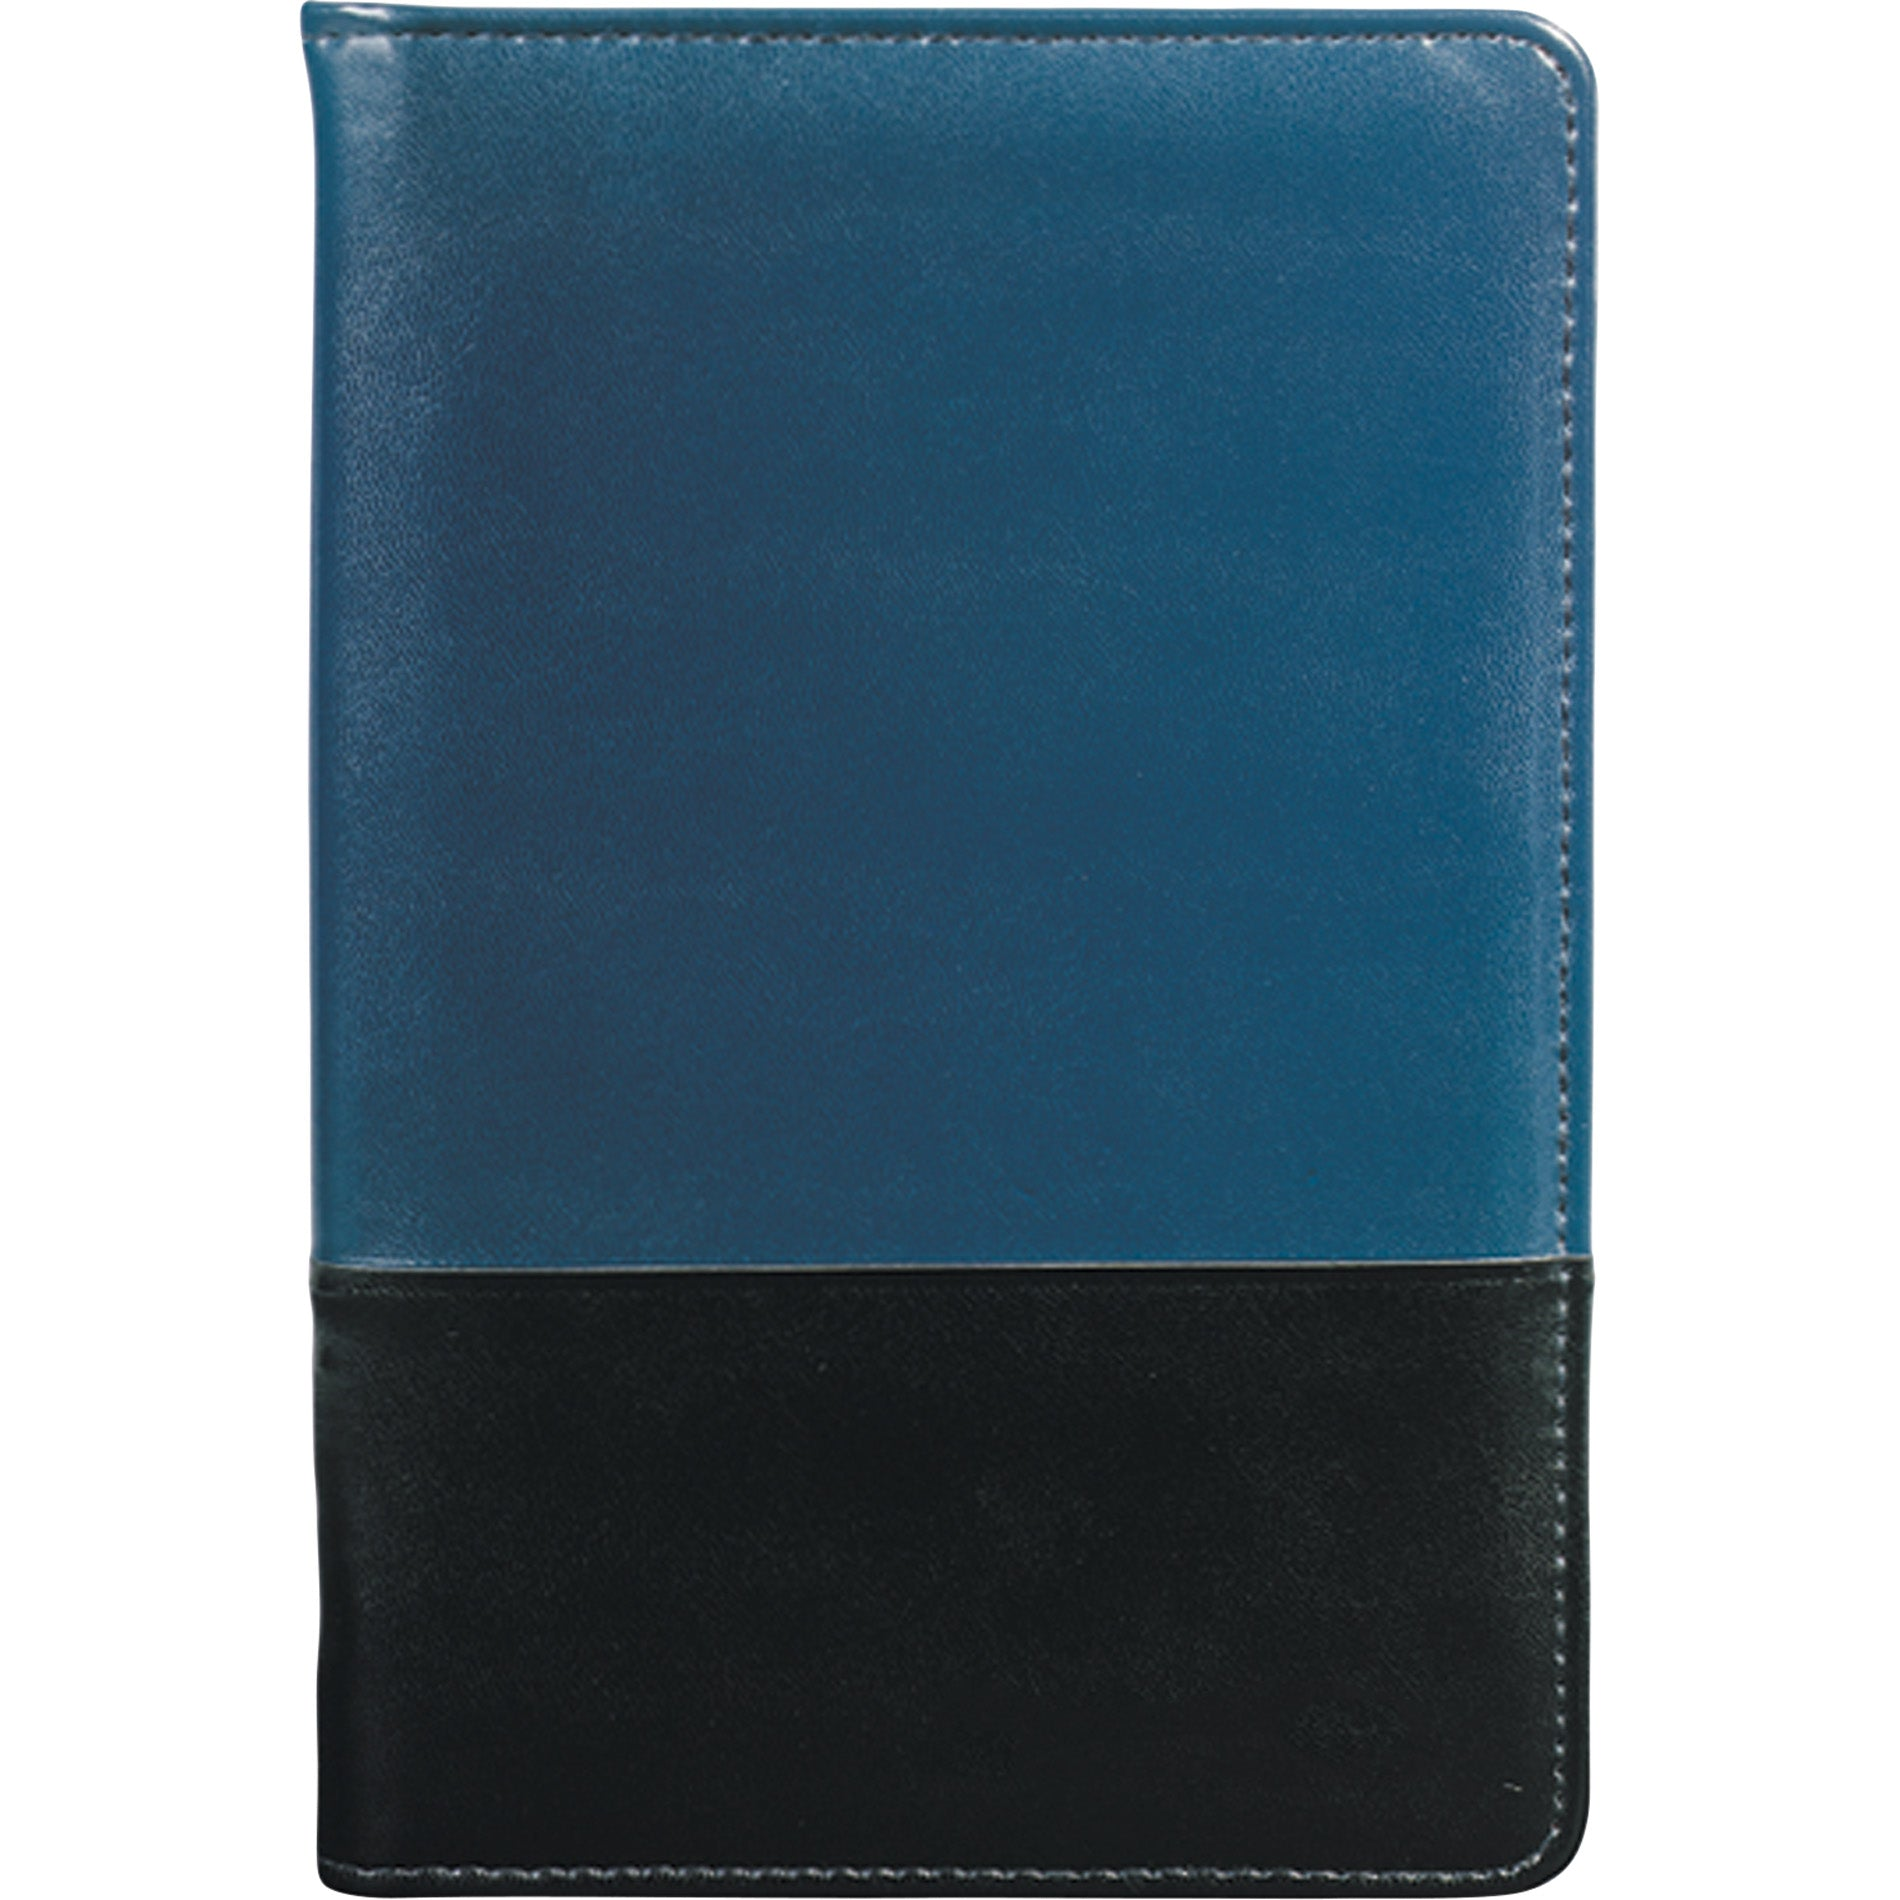 "Junior Padfolio with 5 x 8"" Notepad"